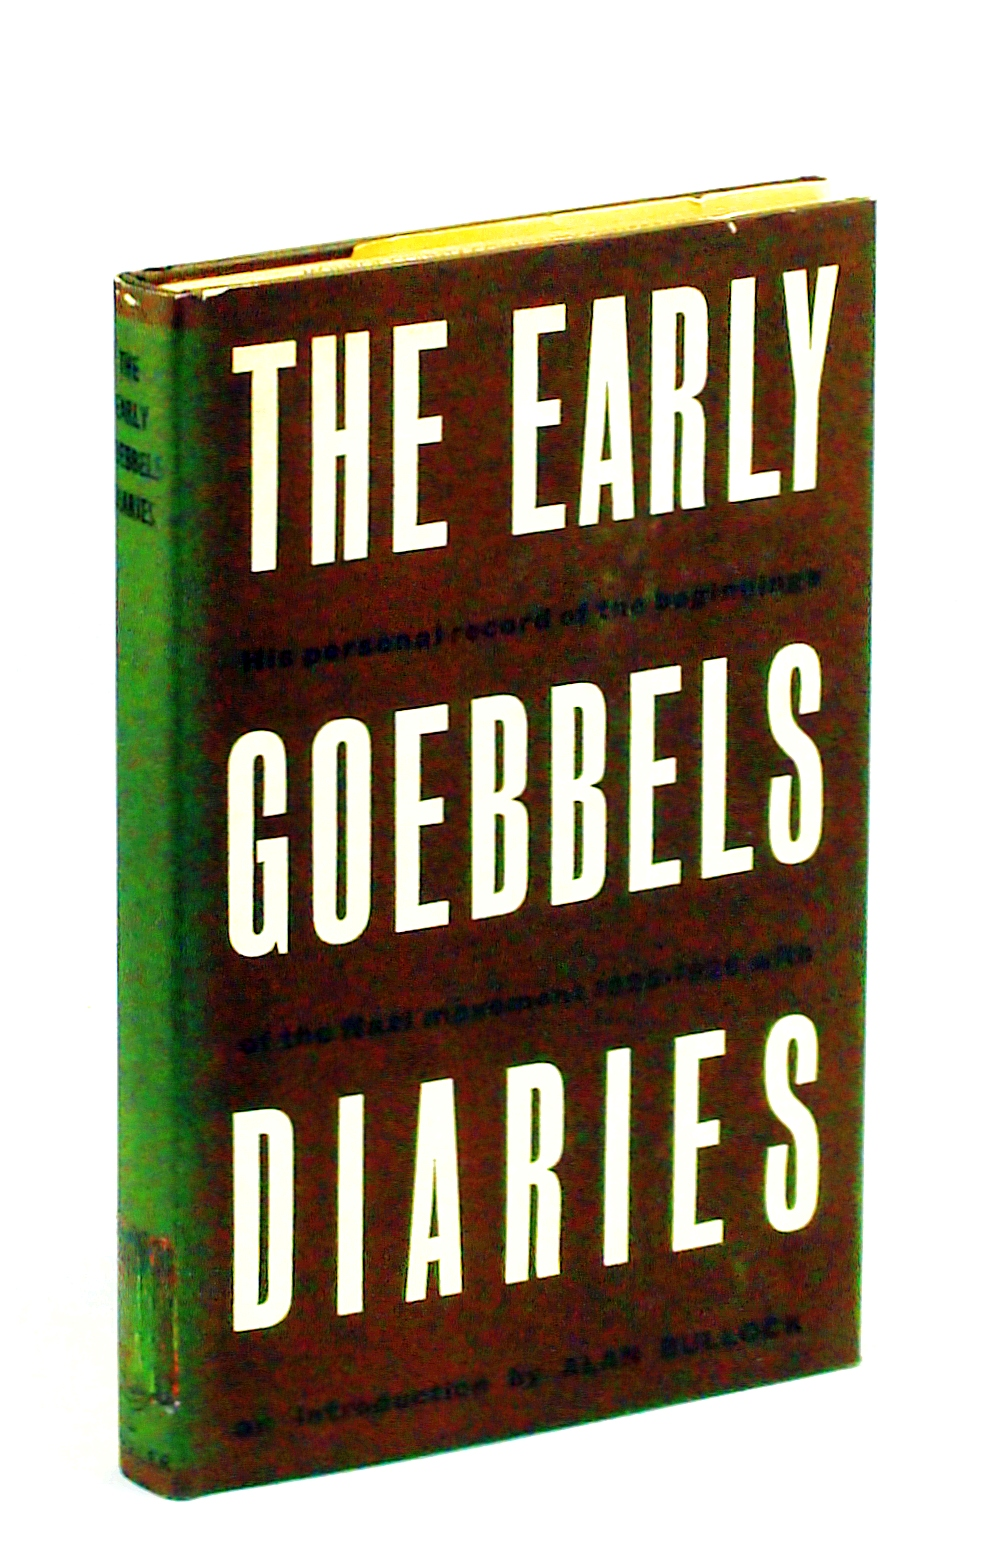 Image for The early Goebbels diaries, 1925-1926